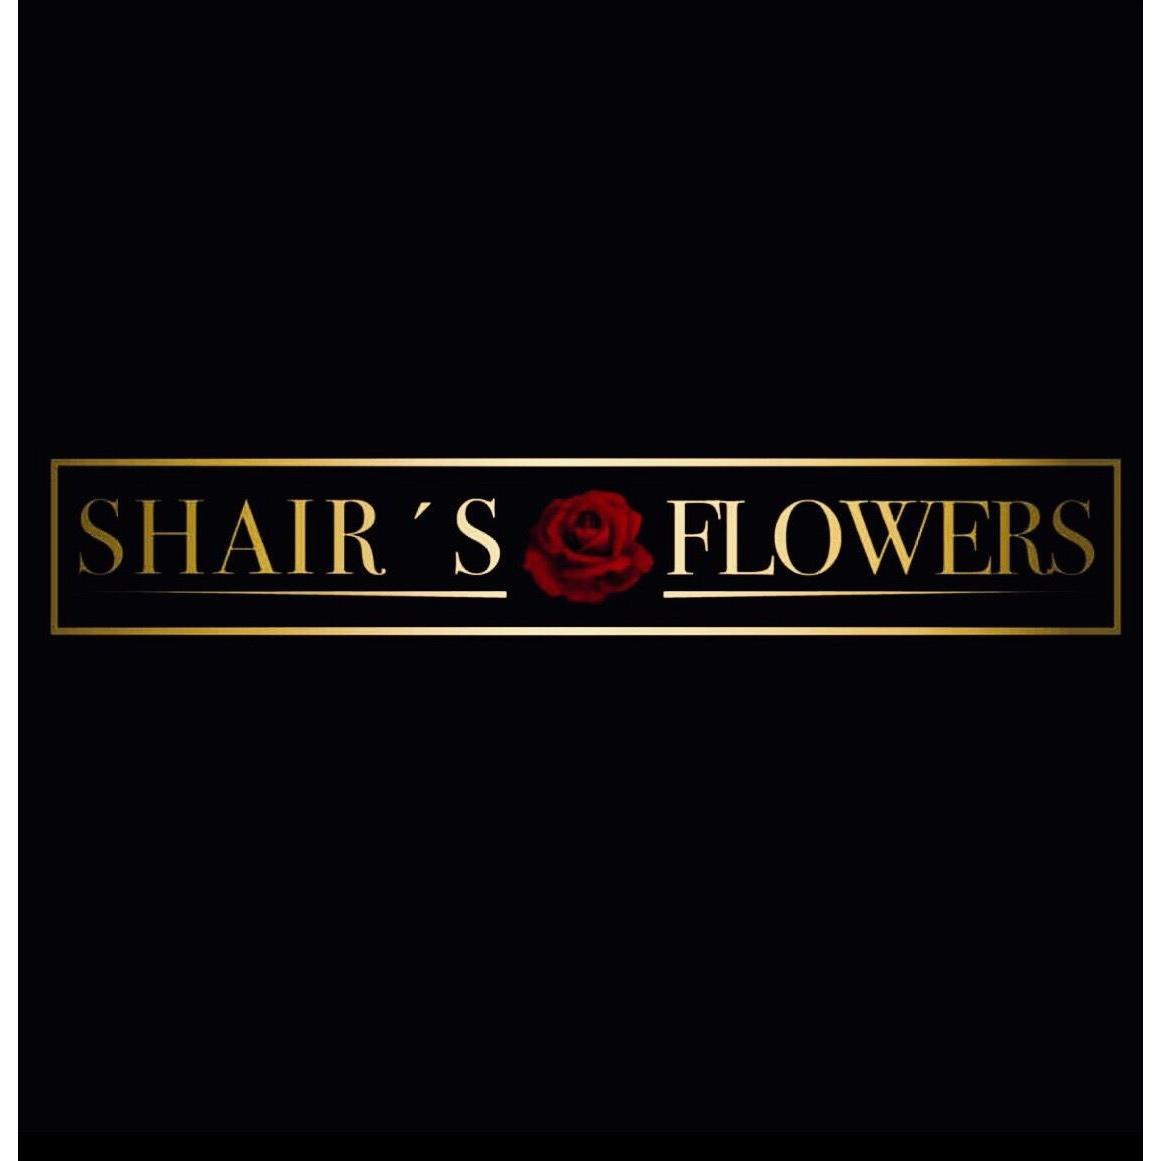 Shair's Flowers